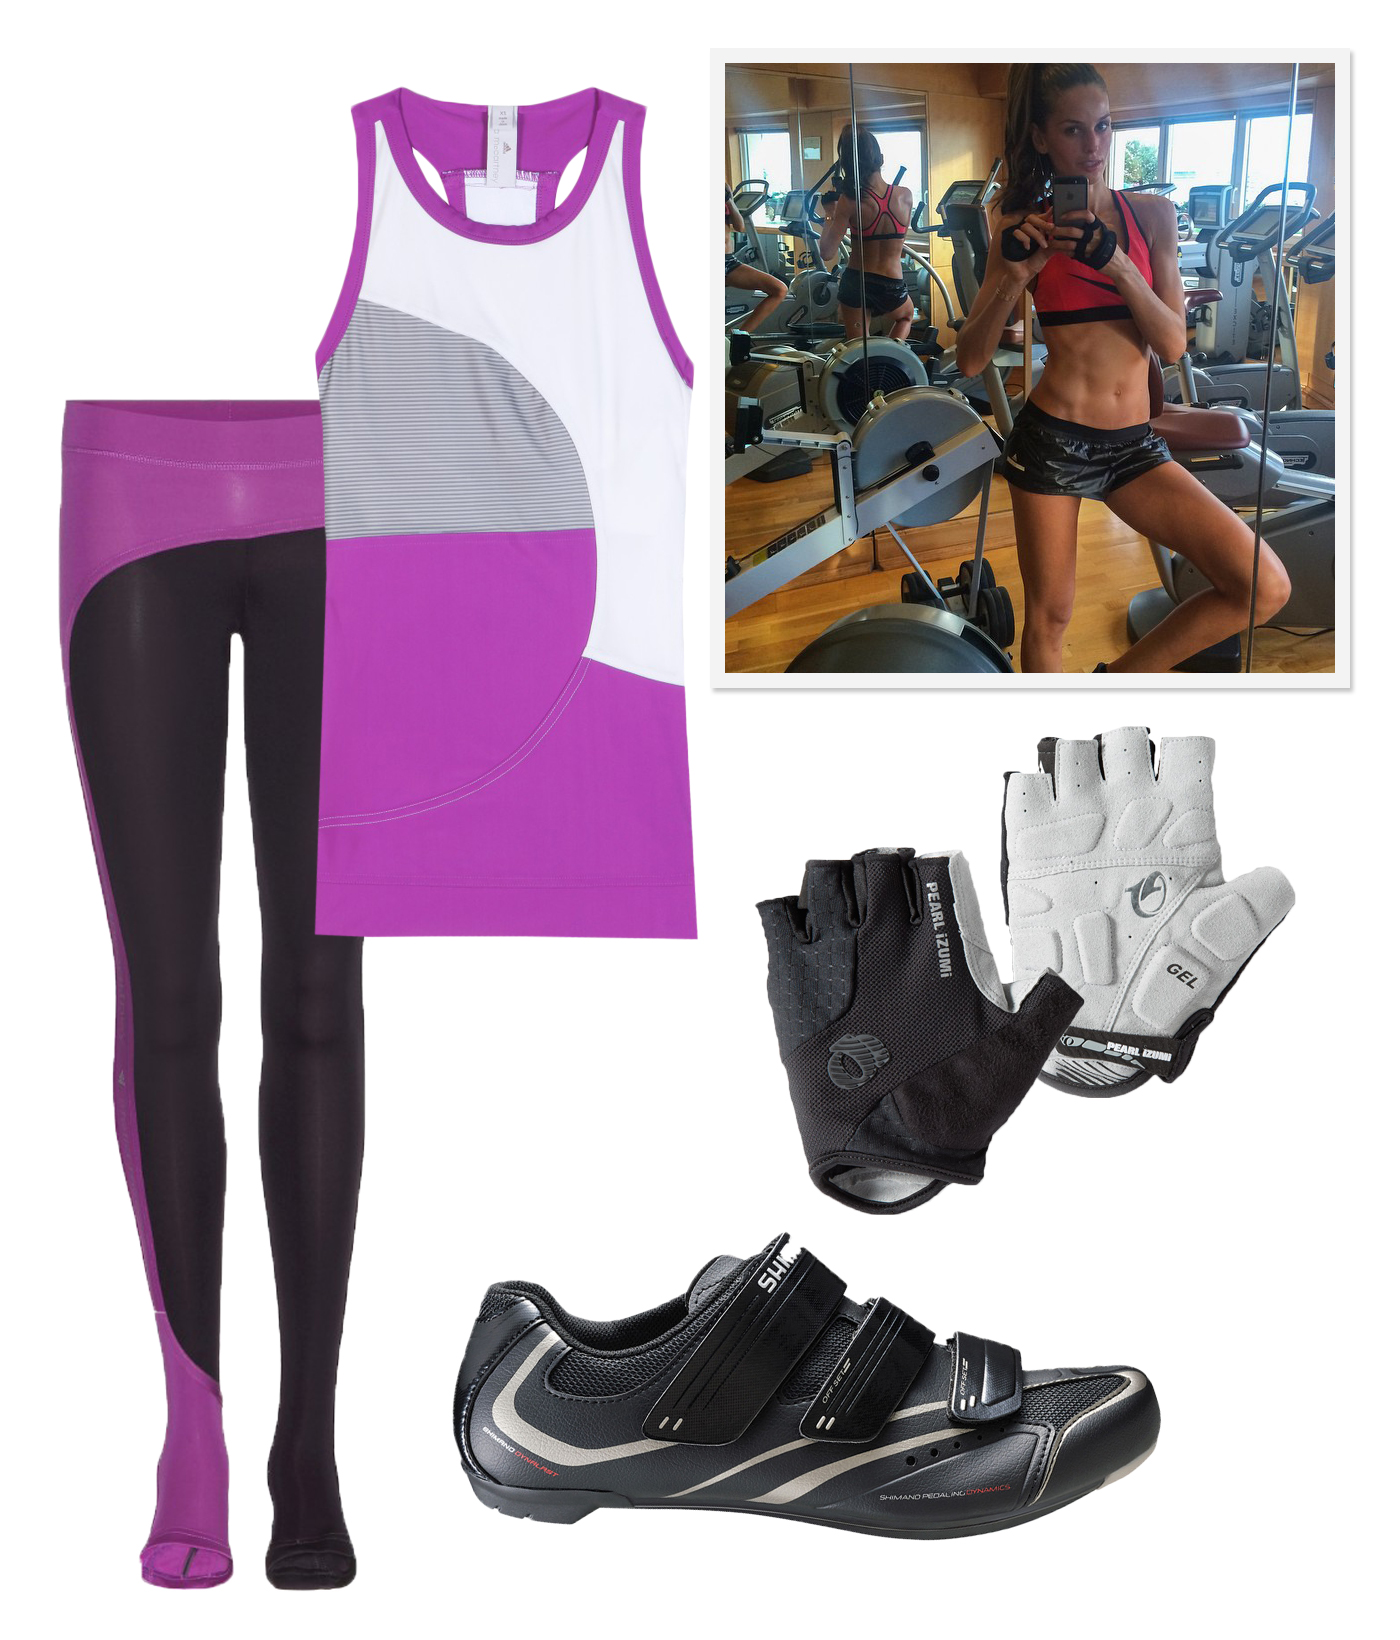 new-years-resolution-workout-gear-10.jpg